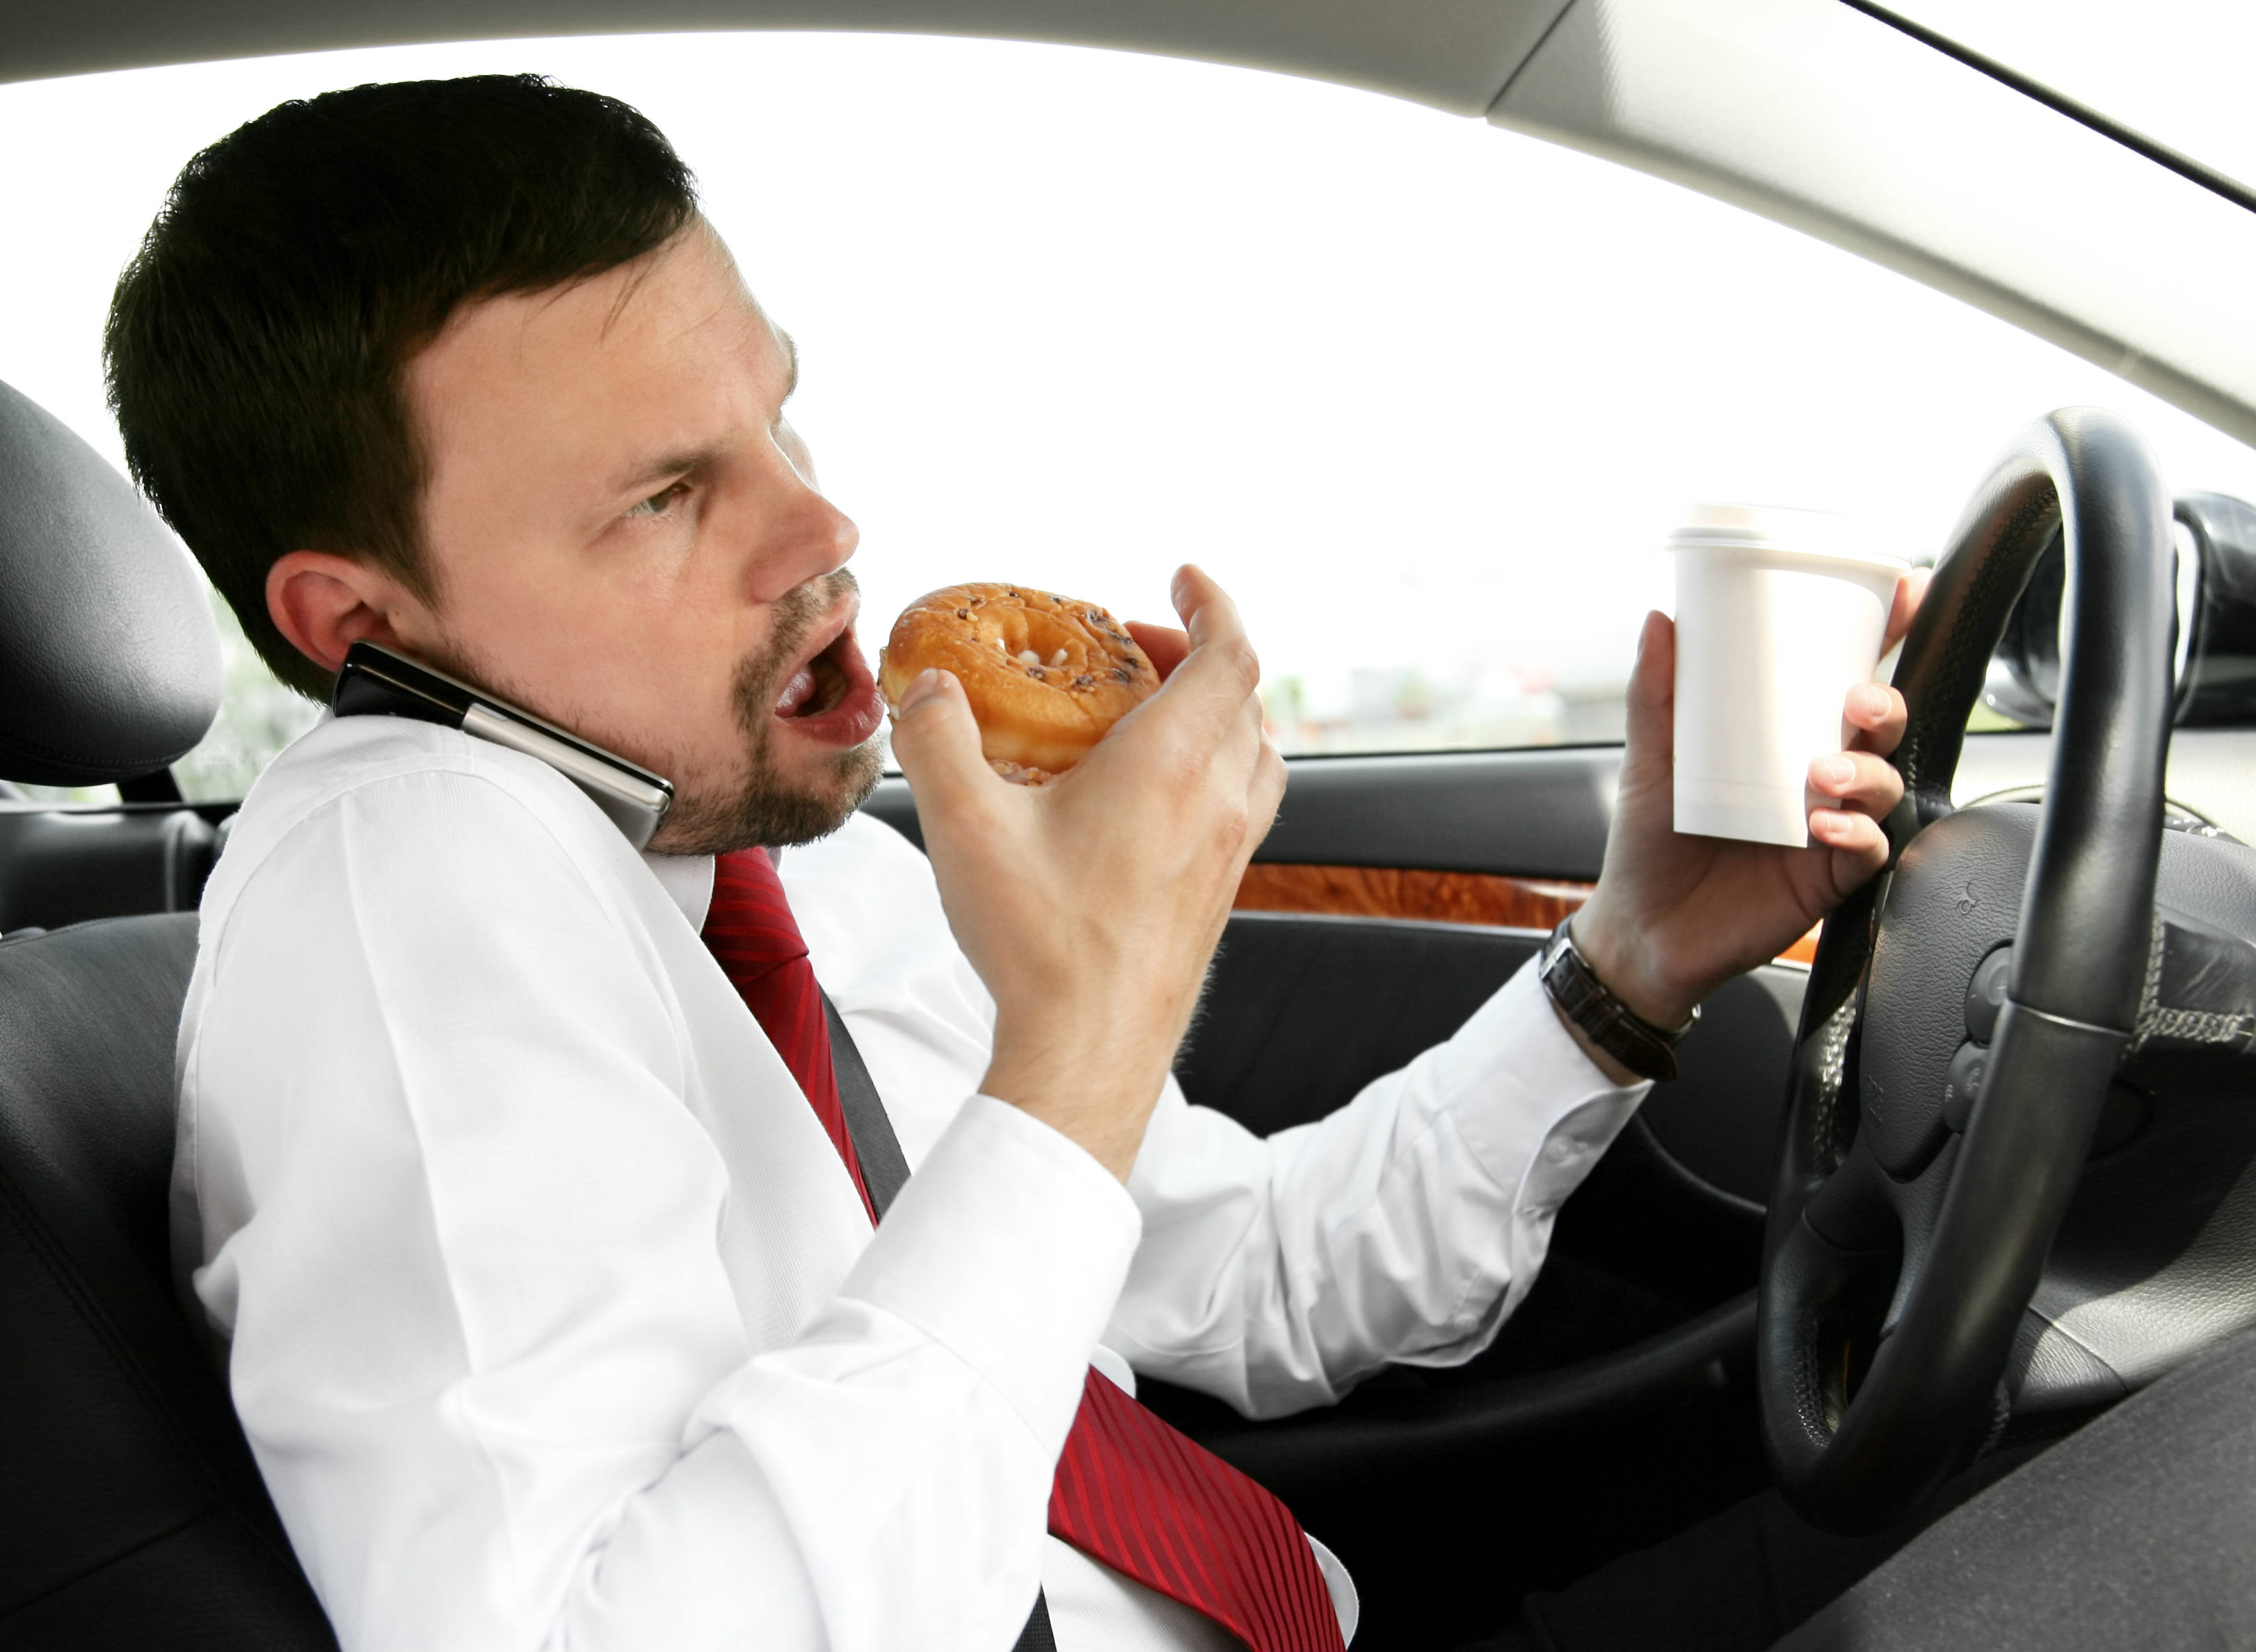 Eating, drinking, smoking: survey reveals the most common distractions for drivers